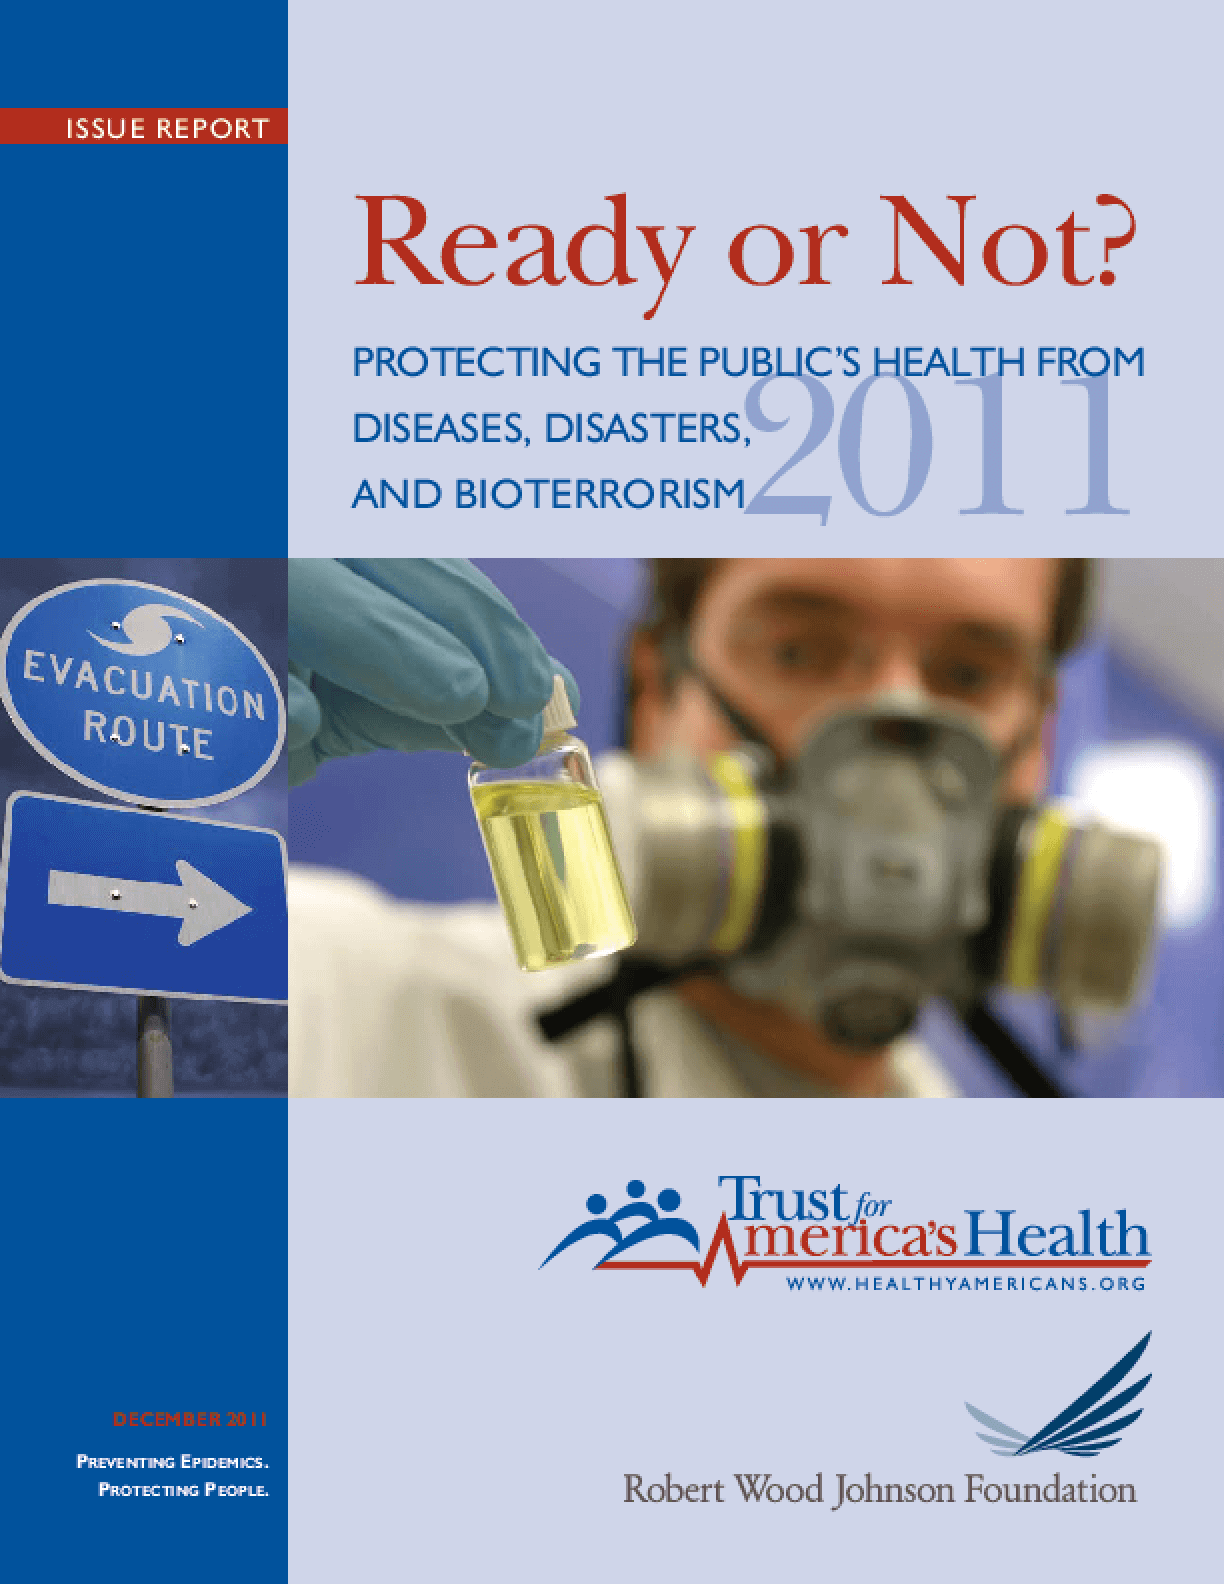 Ready or Not? Protecting the Public's Health From Diseases, Disasters, and Bioterrorism, 2011